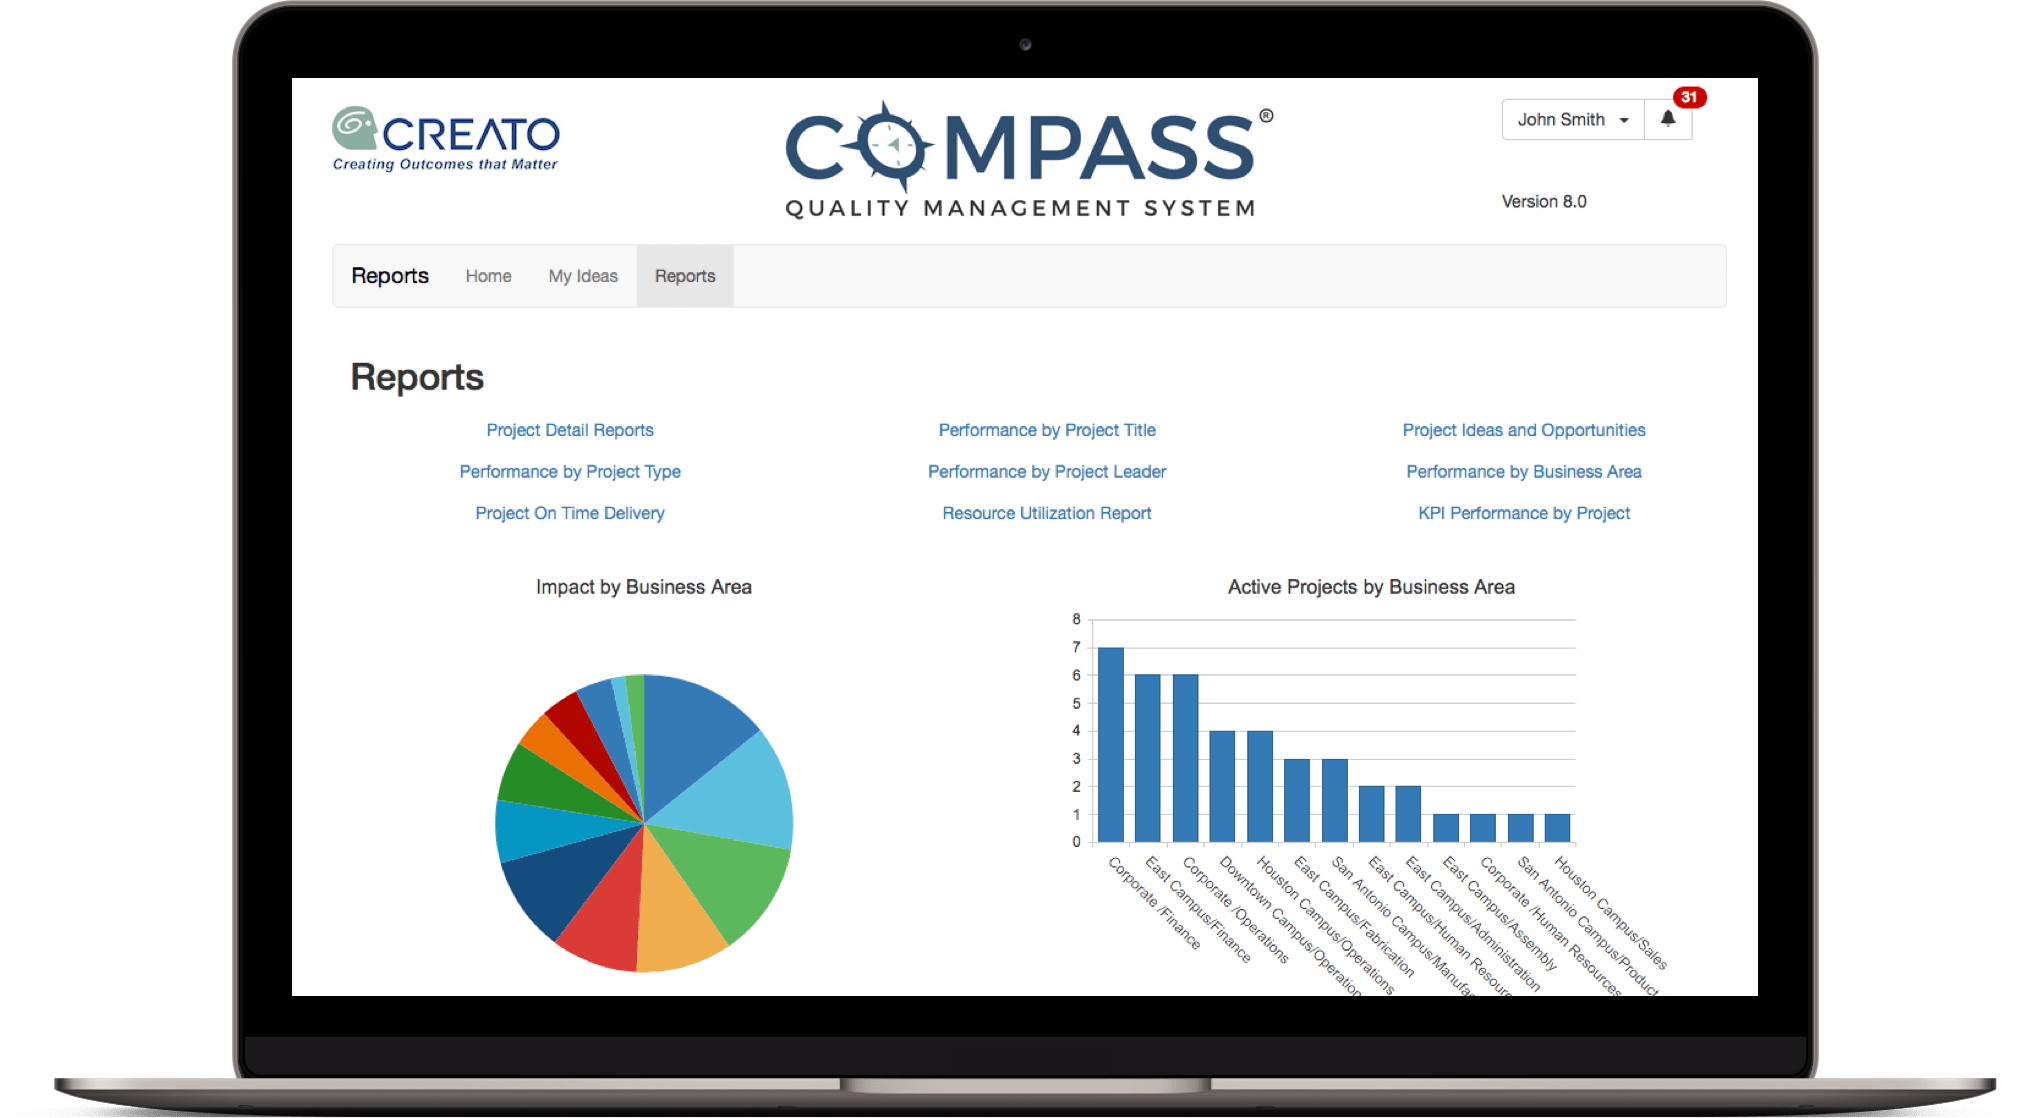 Screenshot of Compass Quality Management System  reporting screen